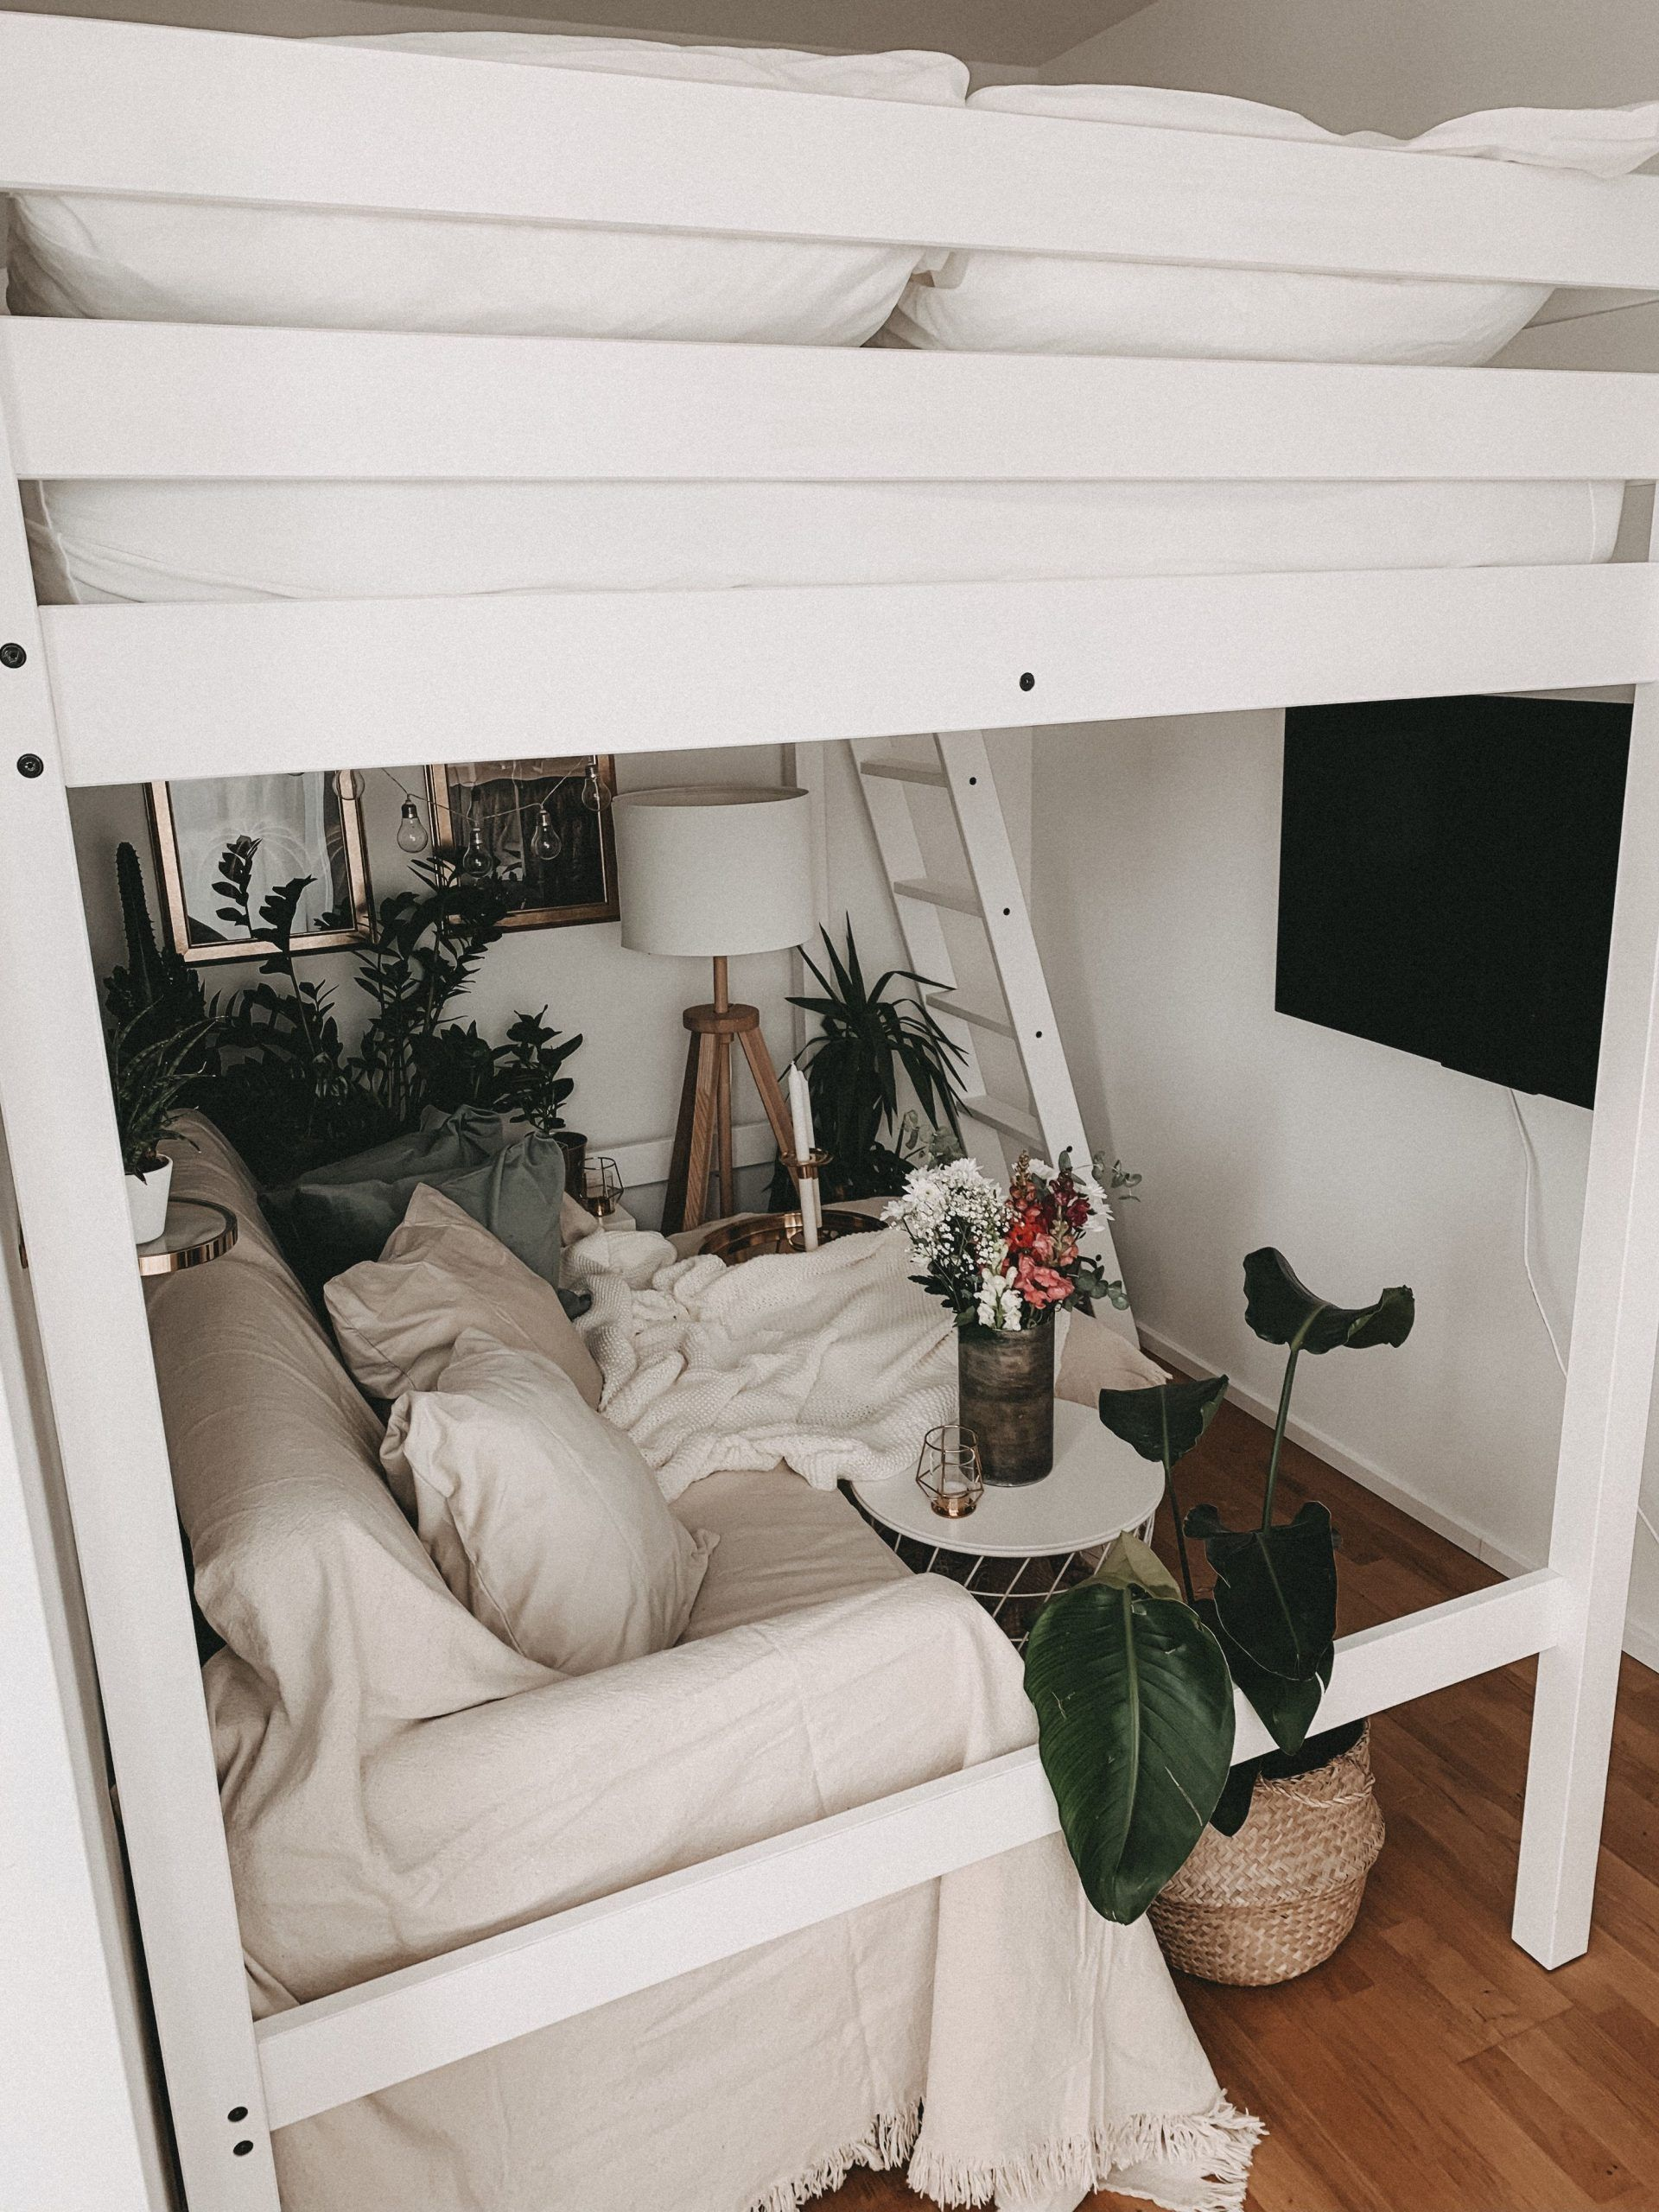 A Comprehensive Overview On Home Decoration In 2020 College